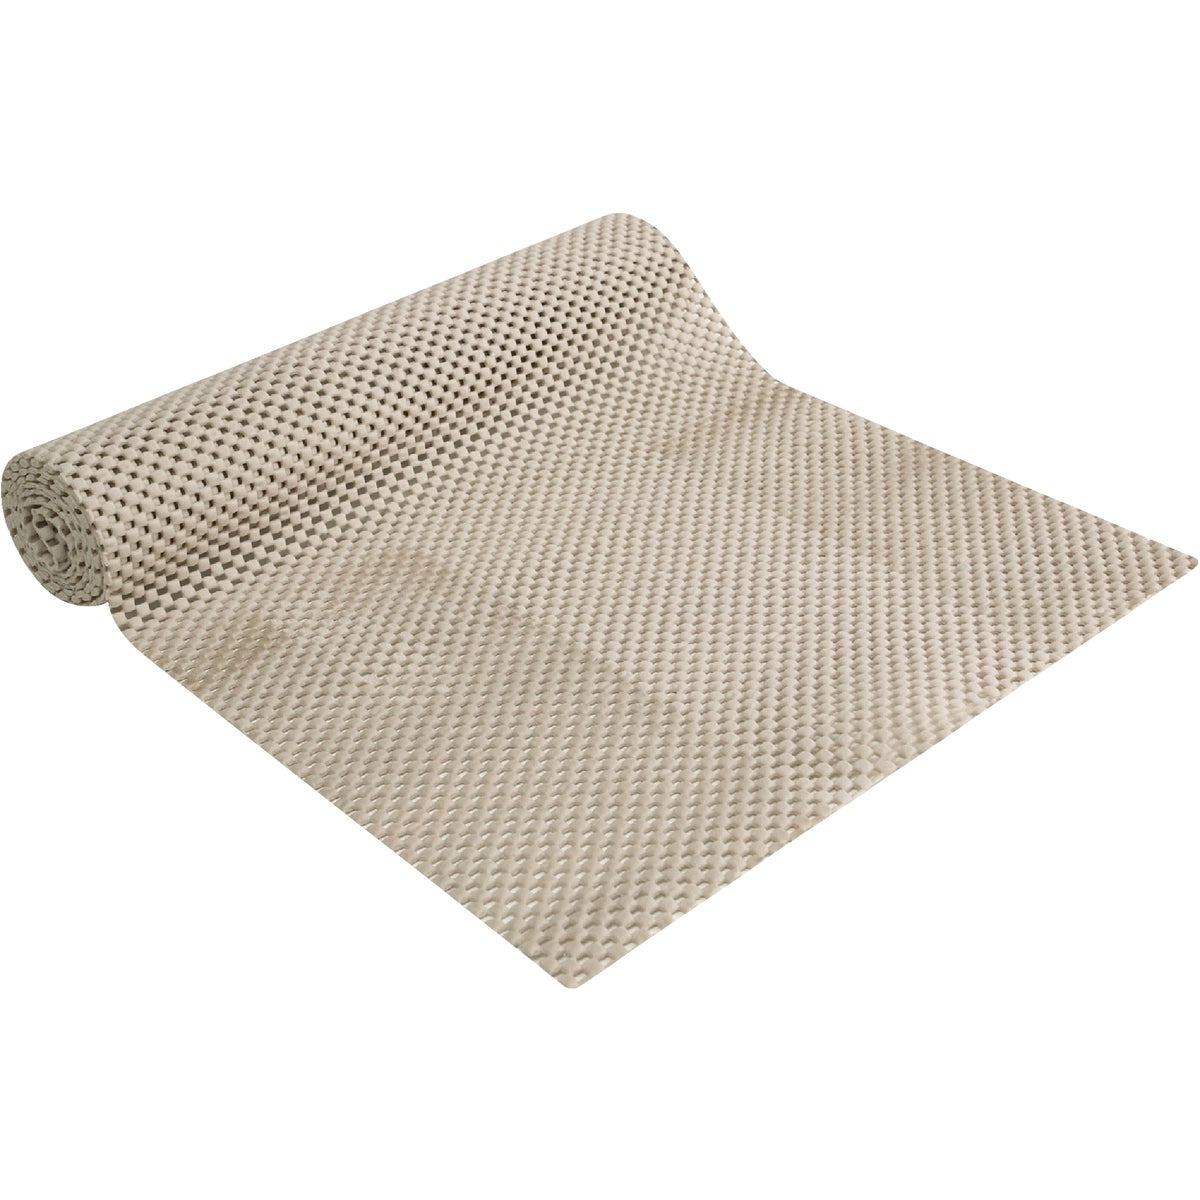 "12""X4' TAUPE GRIP LINER - 04F-C6L59-01 by Kittrich Corp"